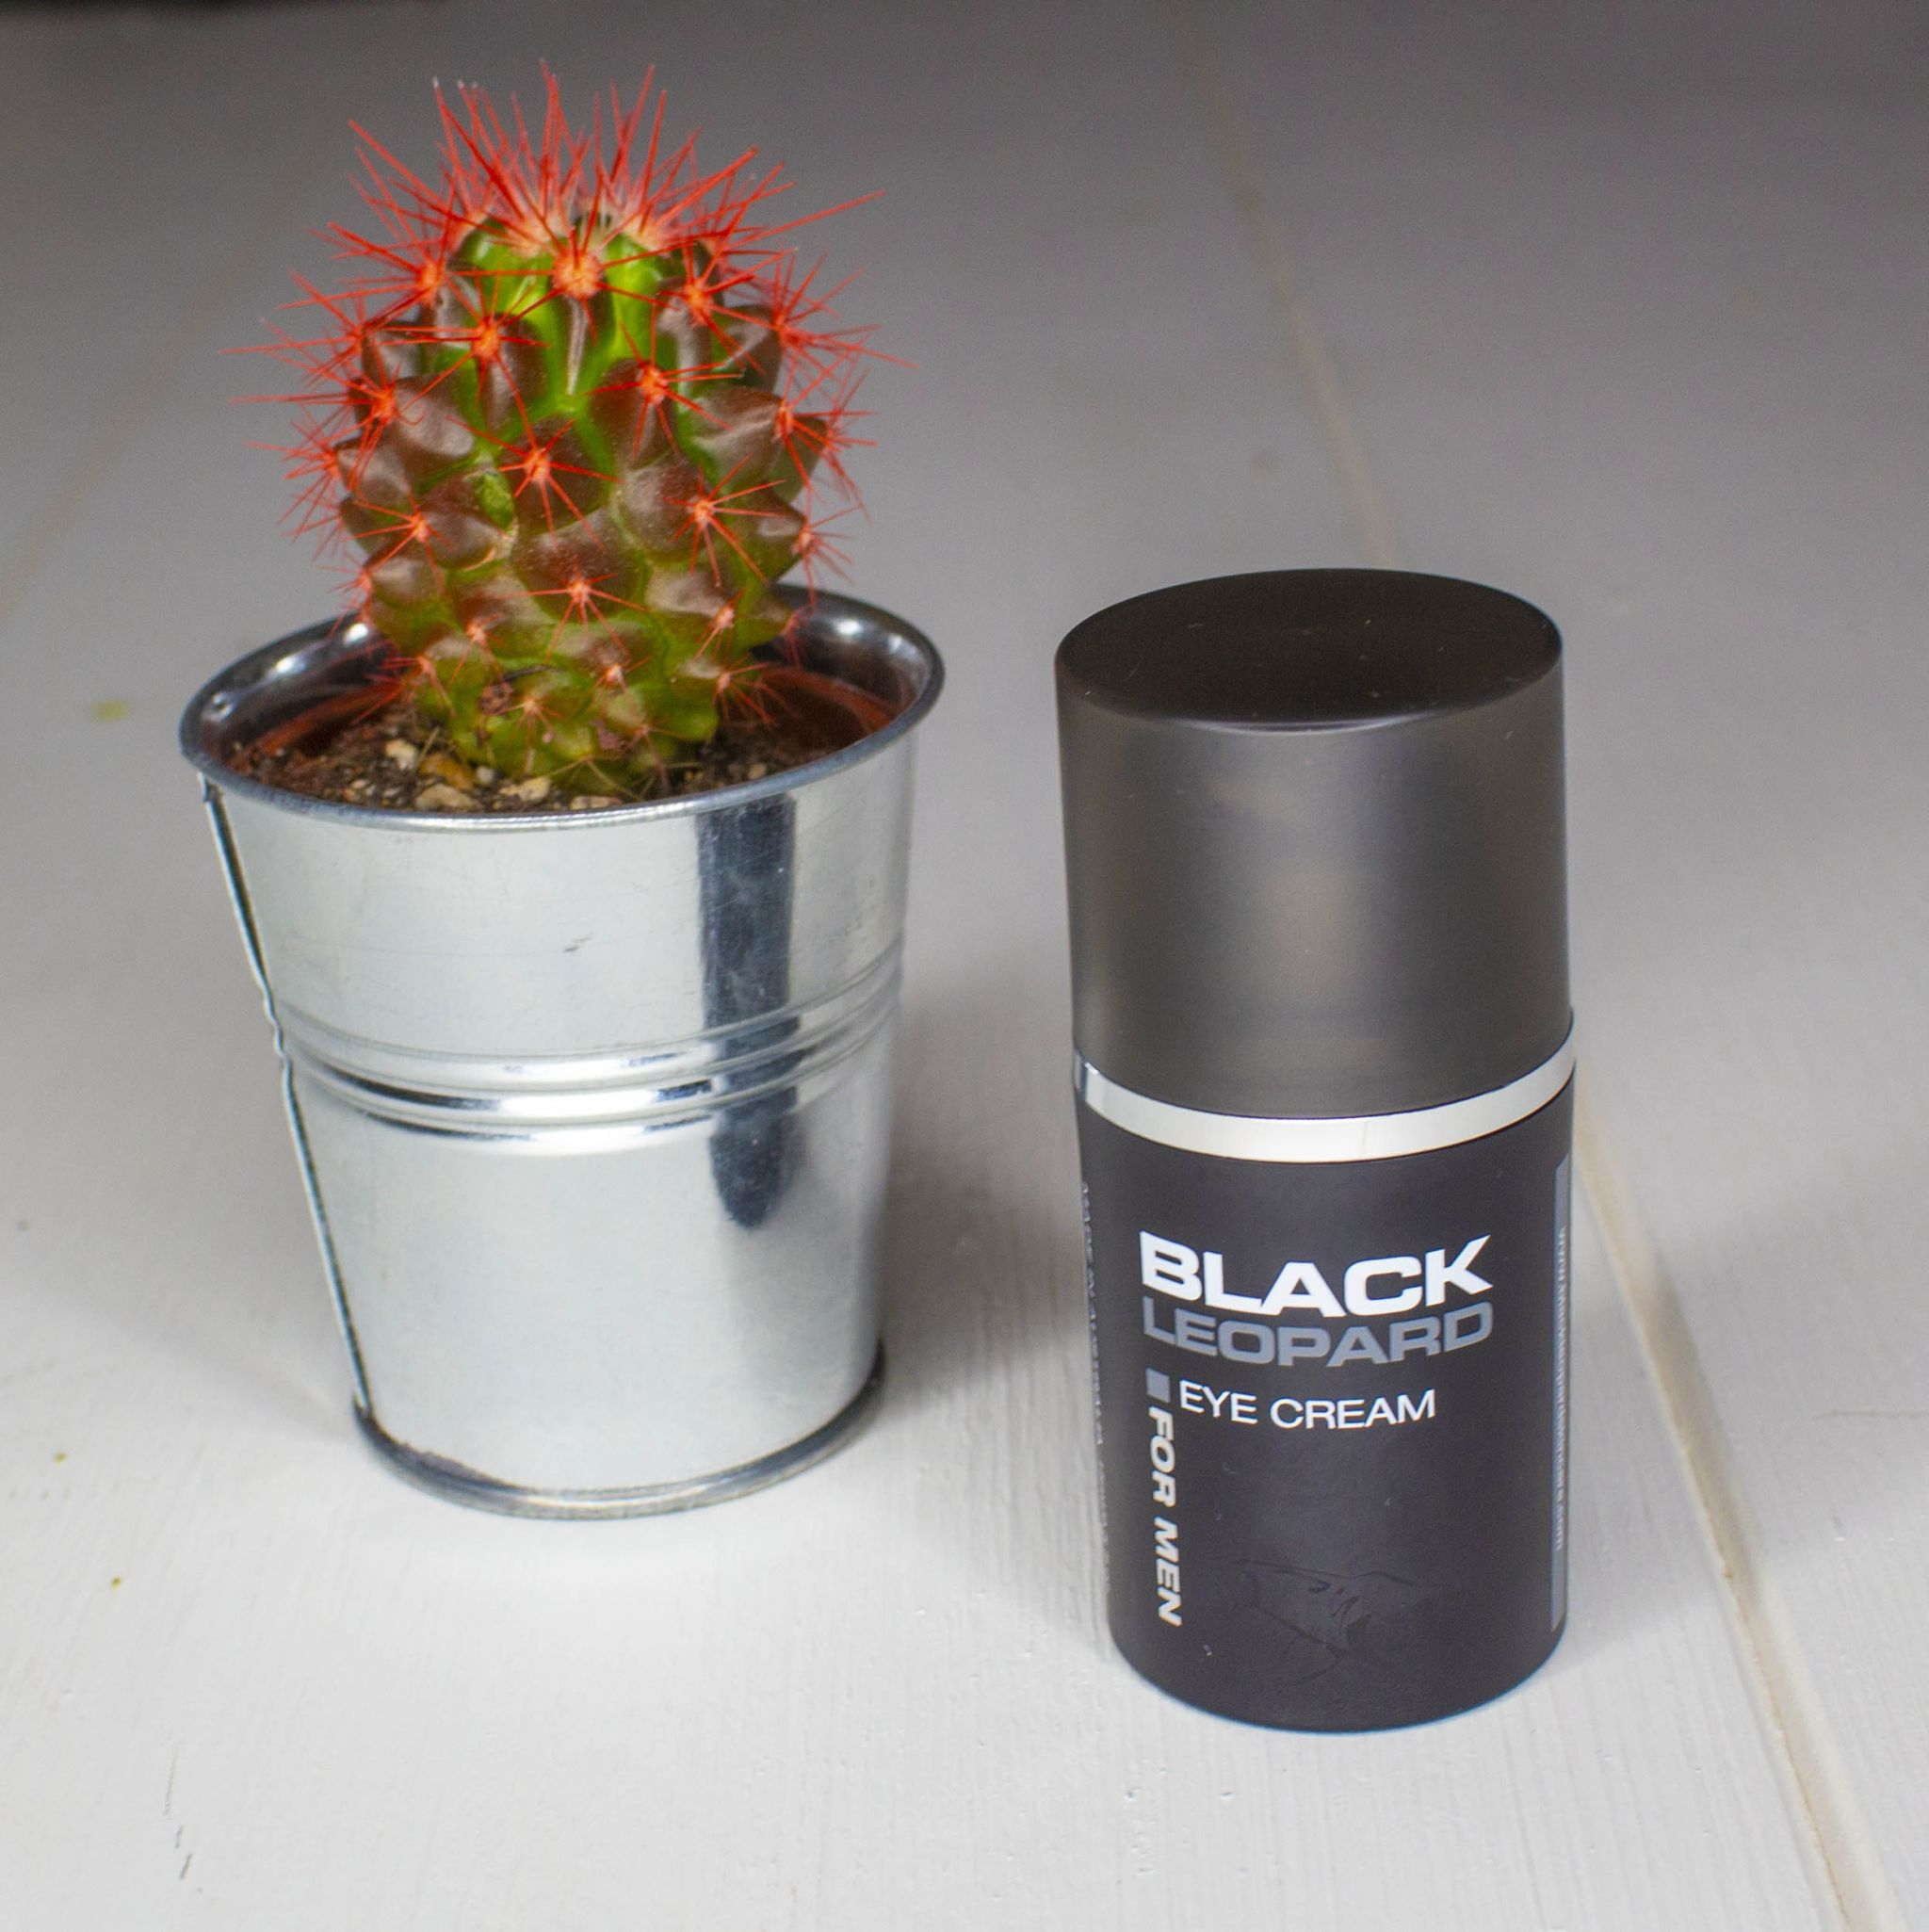 Black Leopard men's skincare range: Australia's latest export